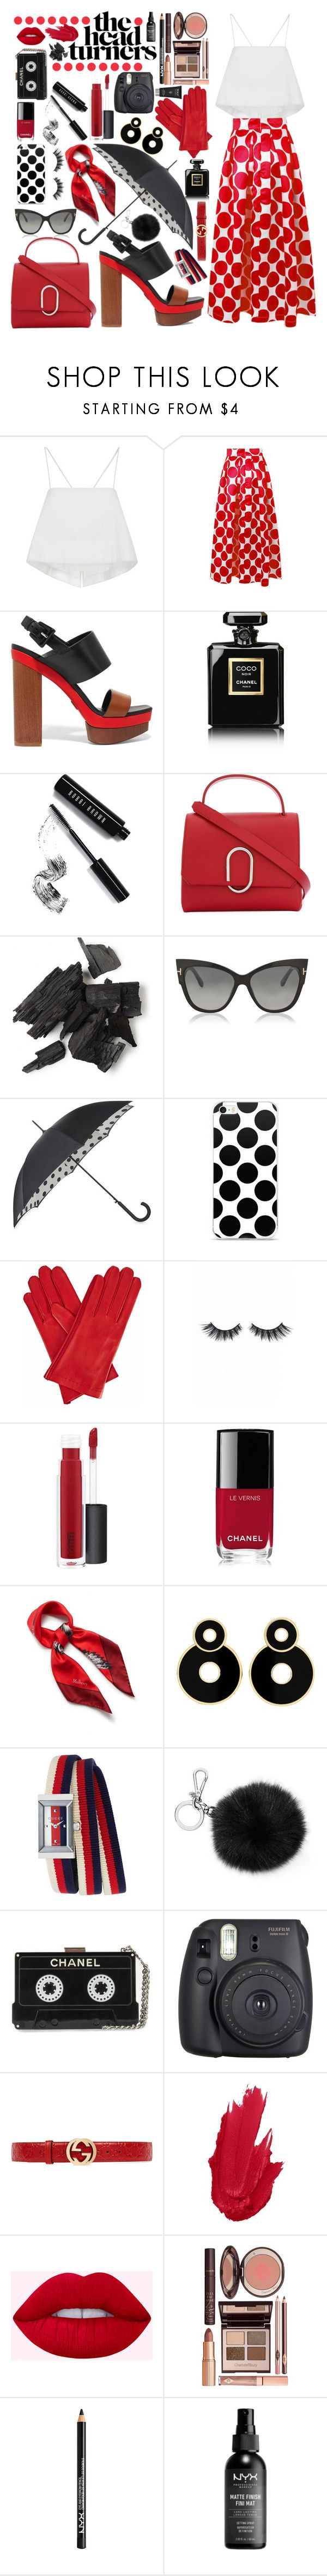 """The Head Turner: Polka Dots"" by catcam13 ❤ liked on Polyvore featuring A.L.C., Michael Kors, Chanel, Bobbi Brown Cosmetics, 3.1 Phillip Lim, Tom Ford, Fulton, Gizelle Renee, Violet Voss and MAC Cosmetics"